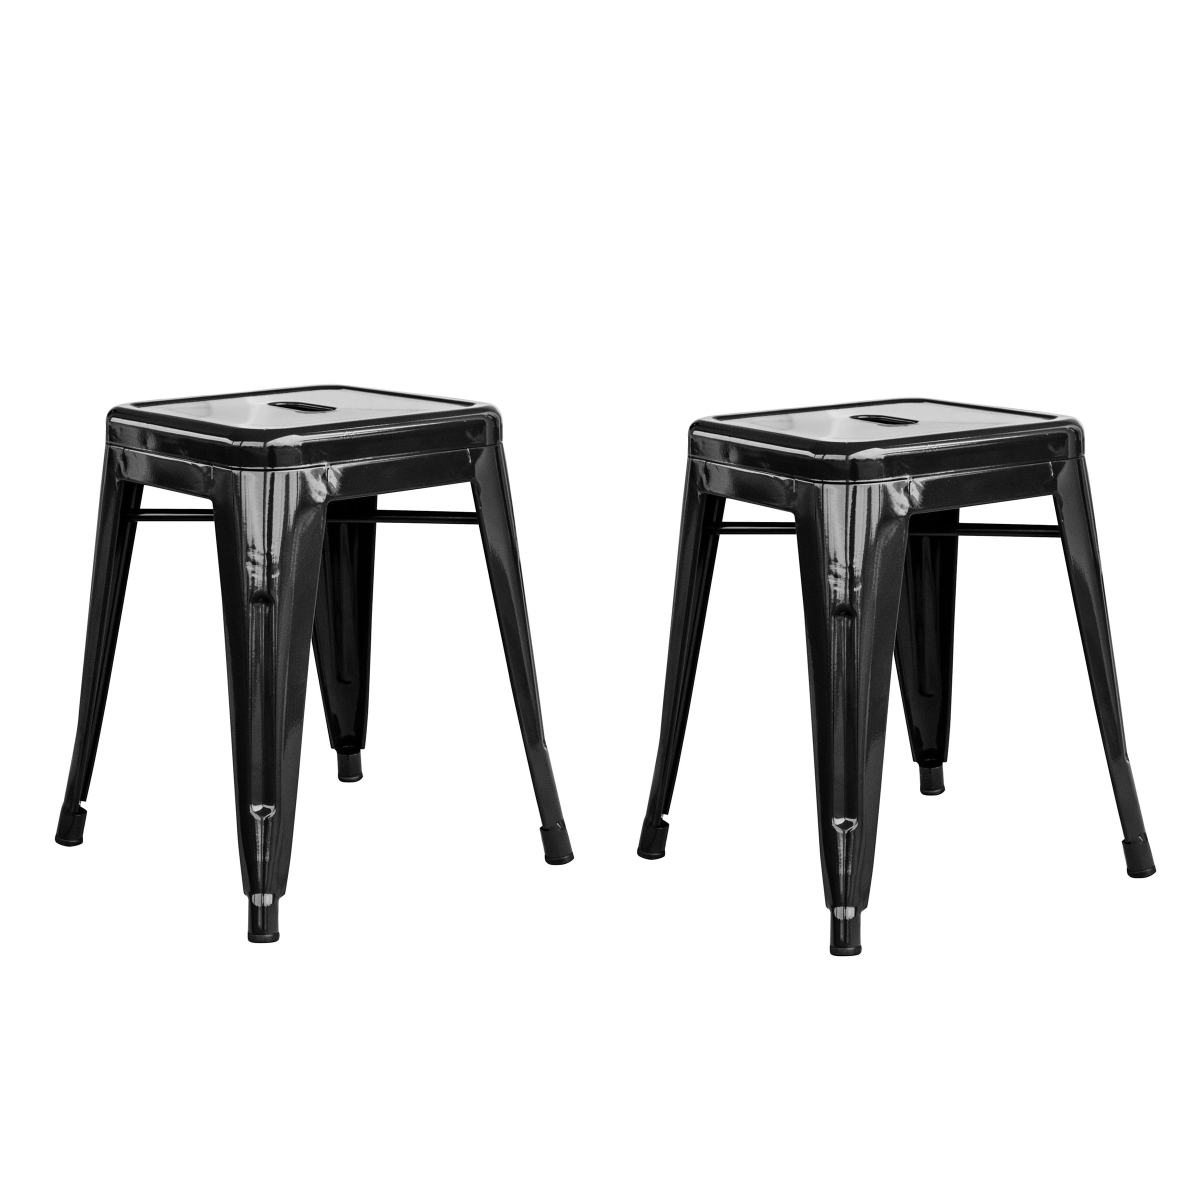 Loft Black 18 Inch Metal Bar Stool - 2 Piece